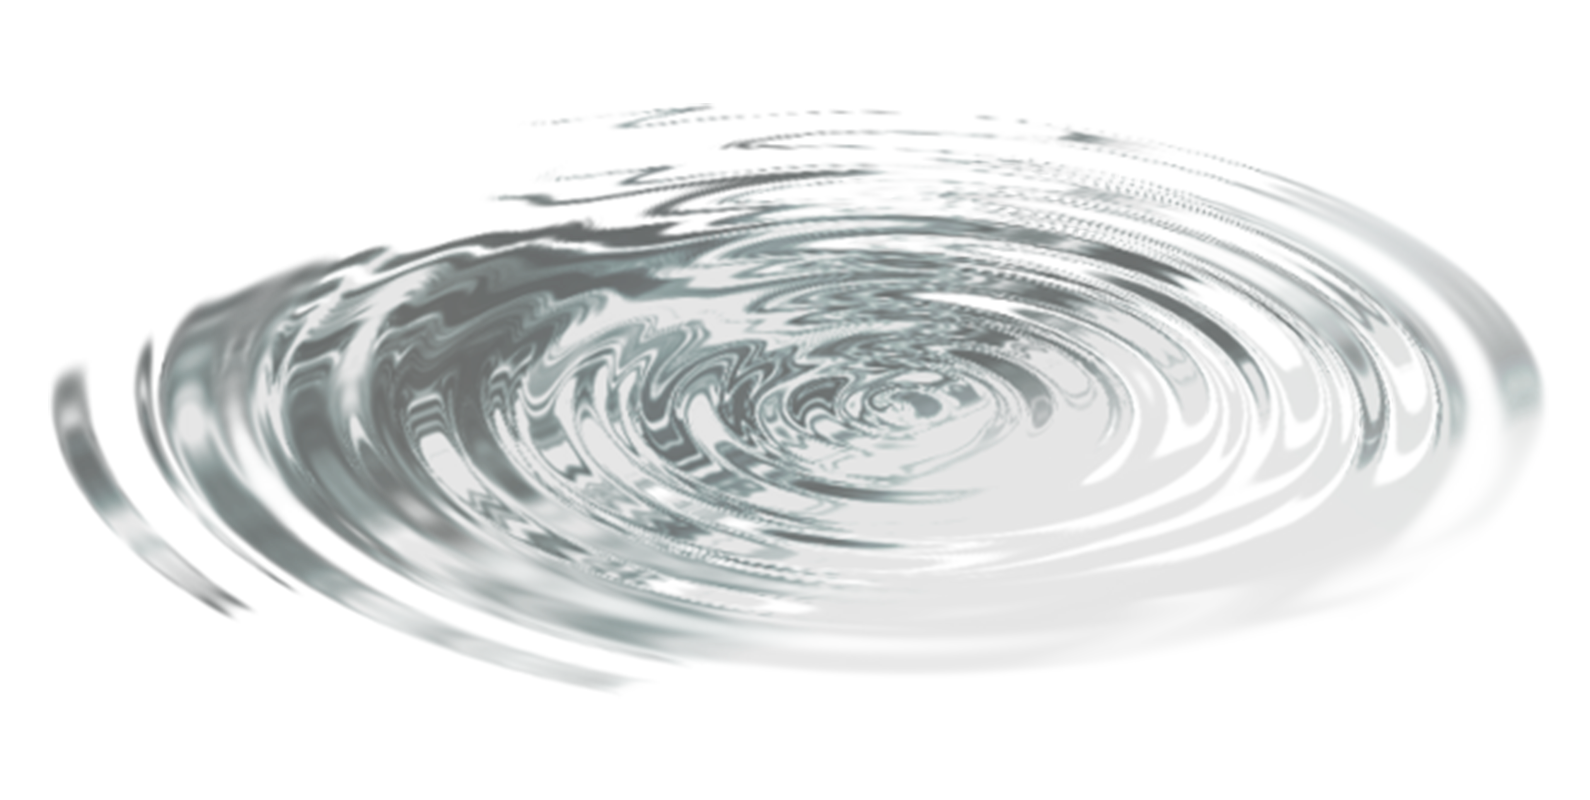 Water ripple png. Puddle clip art ripples